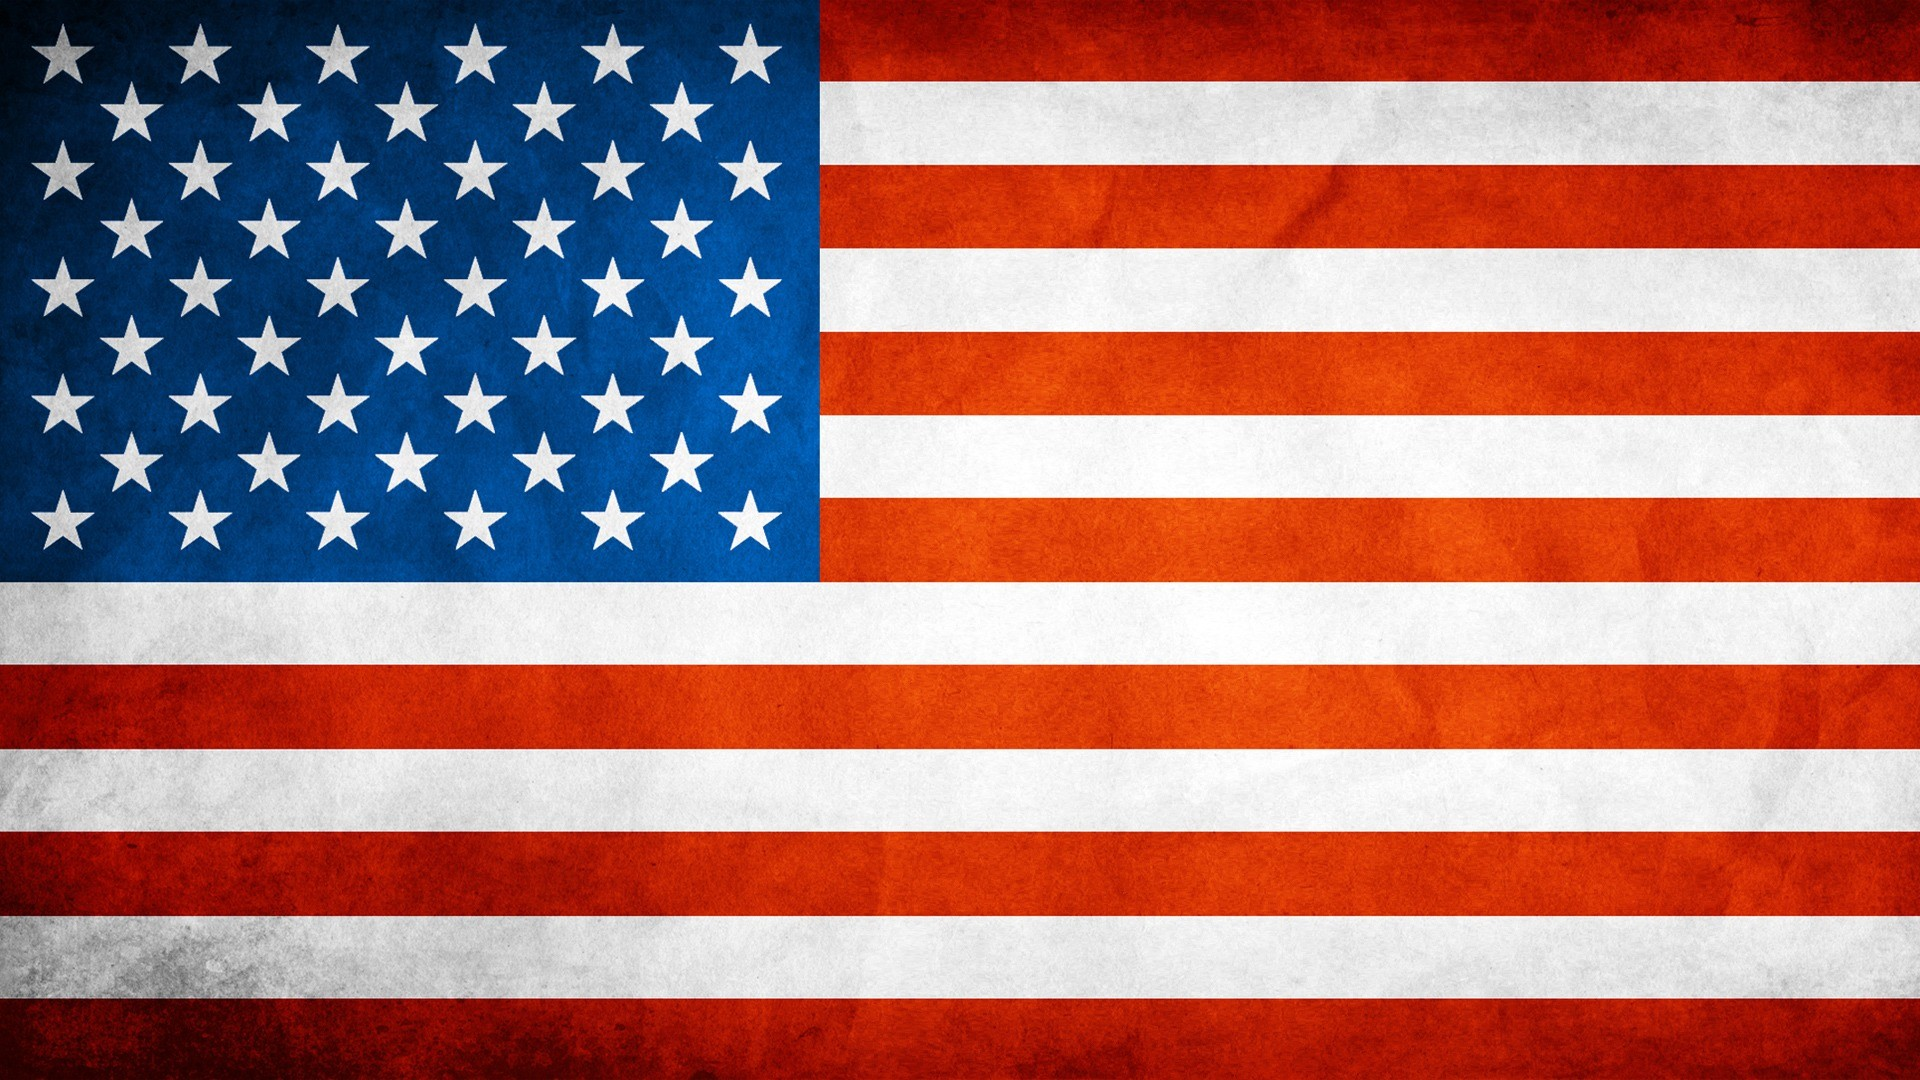 USA Flag Wallpaper United States World Wallpapers